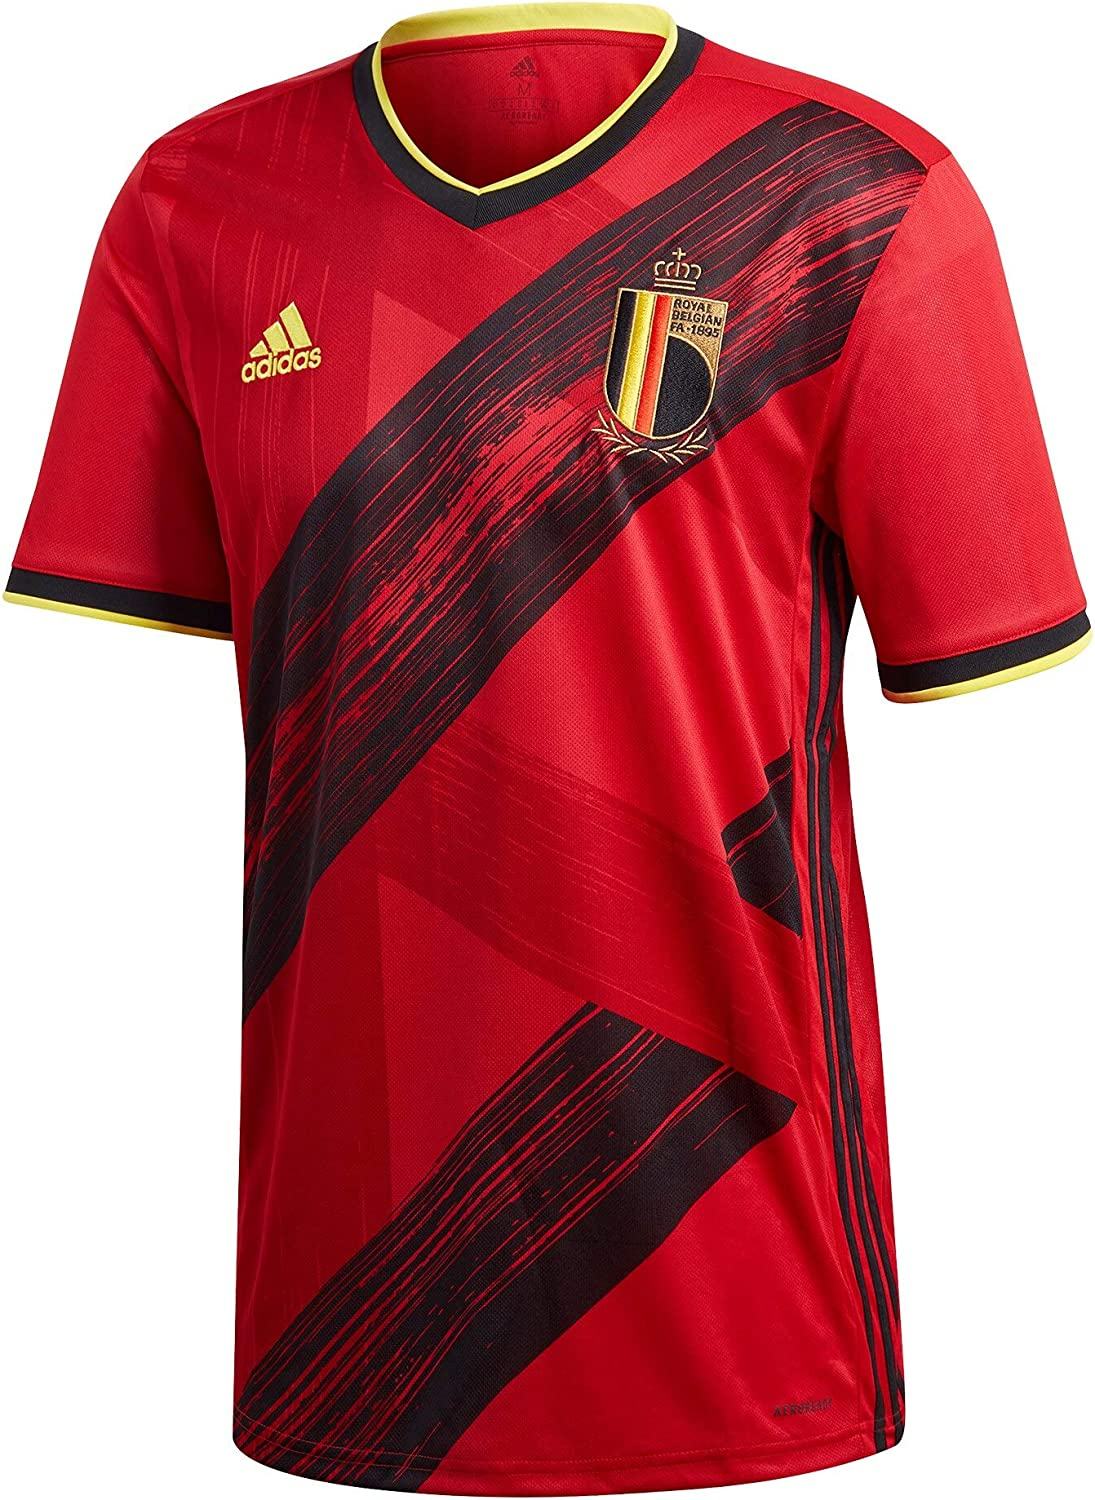 Belgium Euro 2020 Home Jersey by Adidas (Large) Red